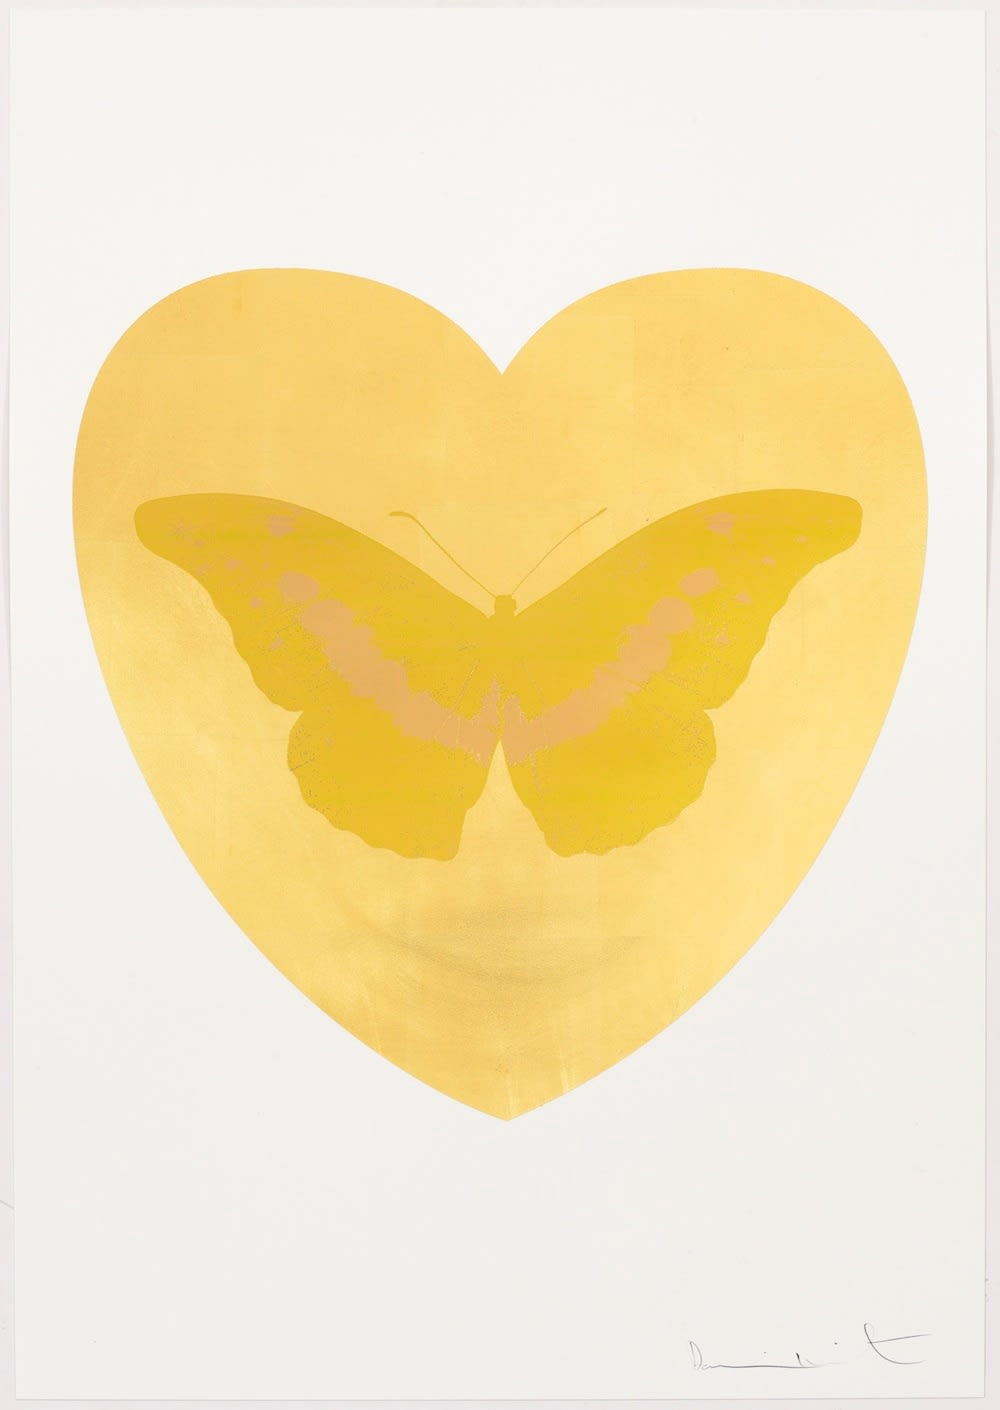 Damien Hirst I Love You - gold leaf, oriental gold, cool gold, 2015 Gold leaf and 2 colour foil block on Somerset Satin 410gsm. OC10332 100 x 70 cm Edition of 14 Signed and numbered